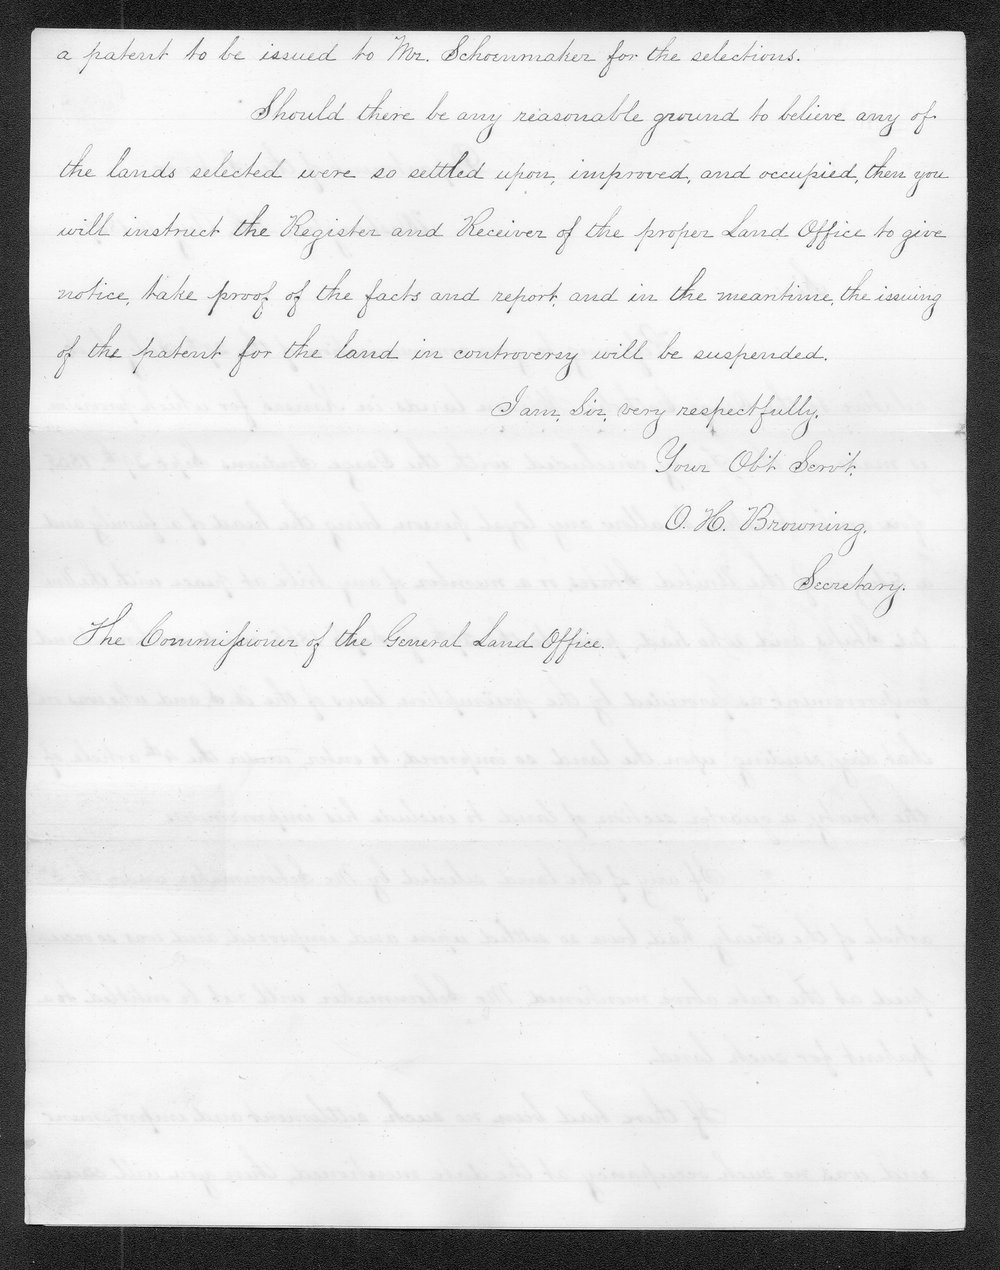 Orville Hickman Browning to the Commissioner of the General Land Office - 2